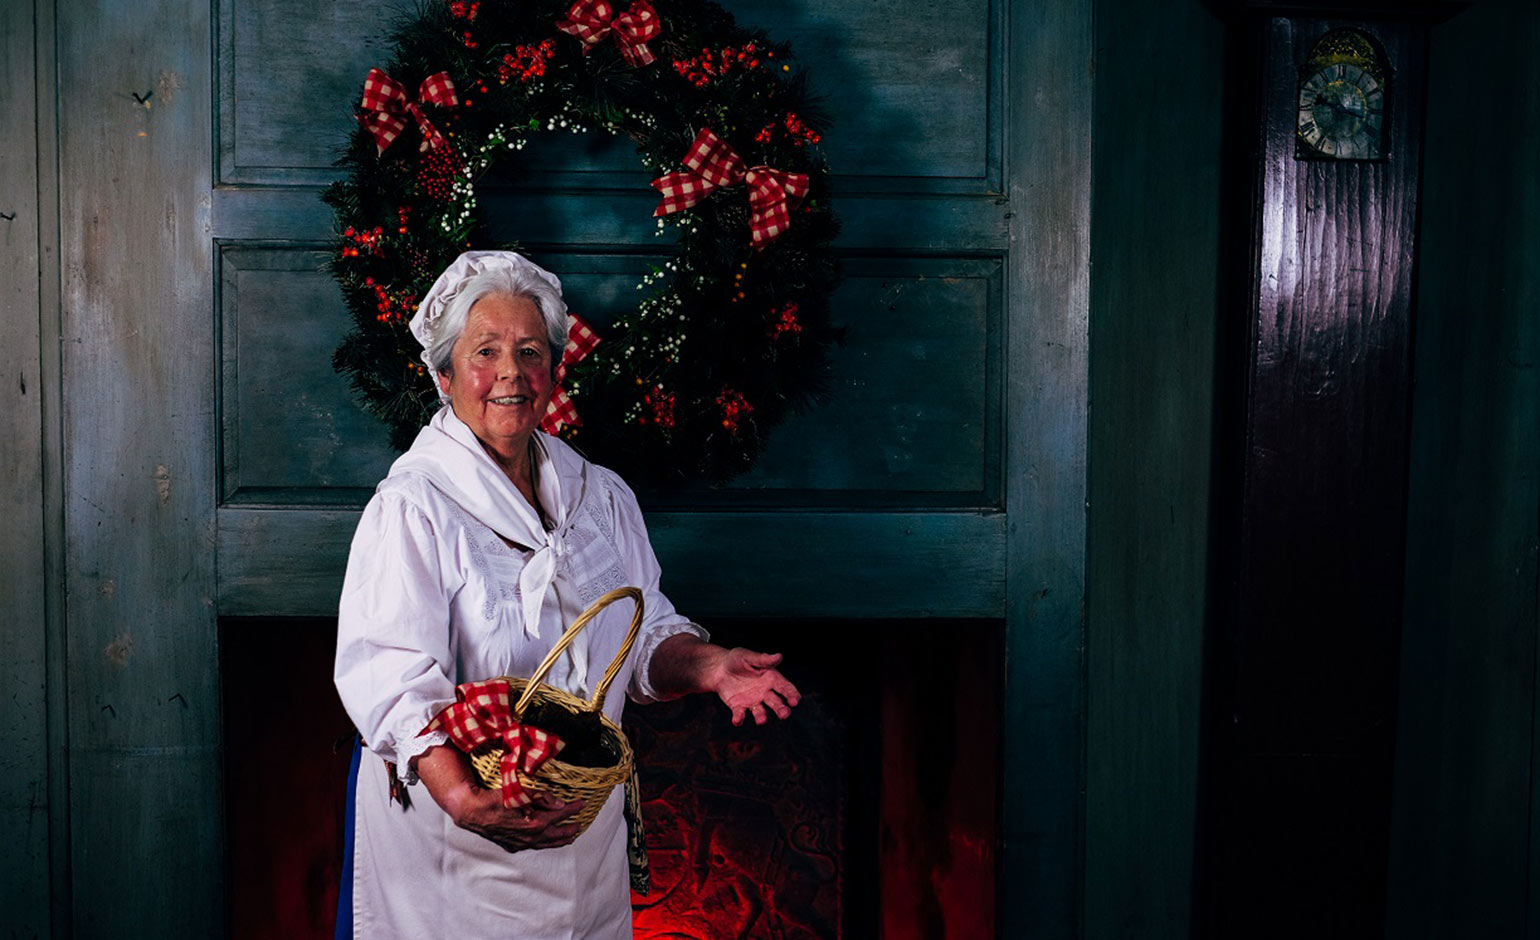 American Museum & Gardens set to launch immersive Christmas experience